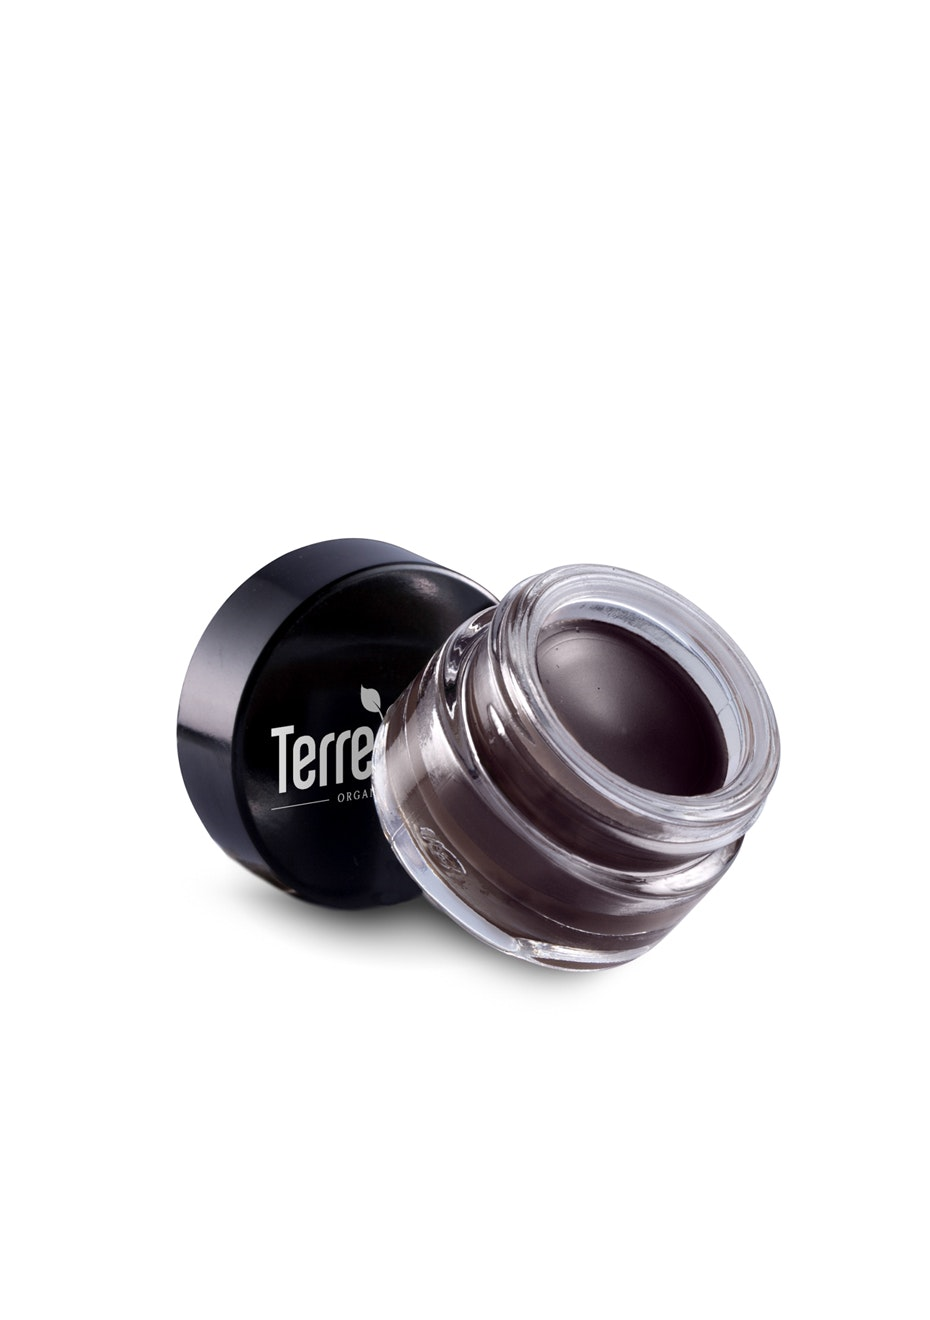 Terre Mere - Indelible Gel Brow - Dark Brown